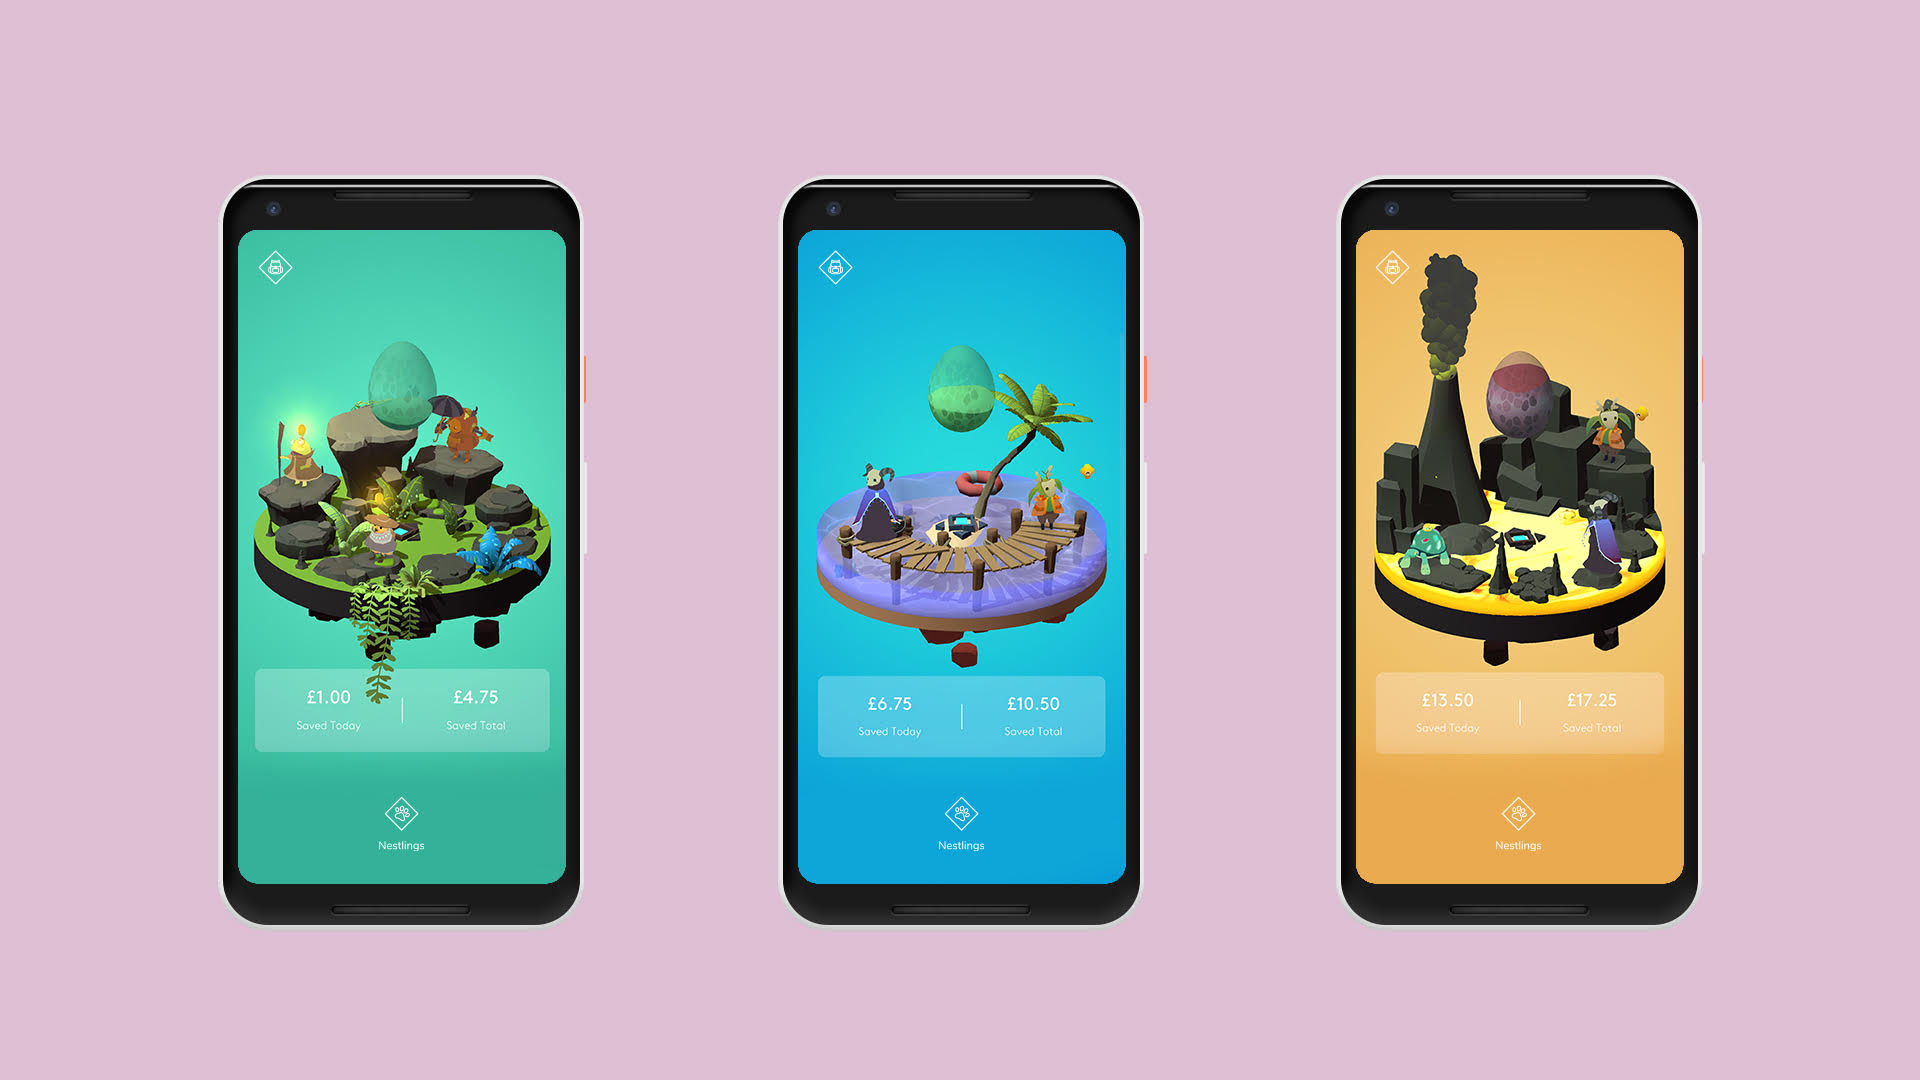 Nestlings, a mobile game where cutesy characters help you